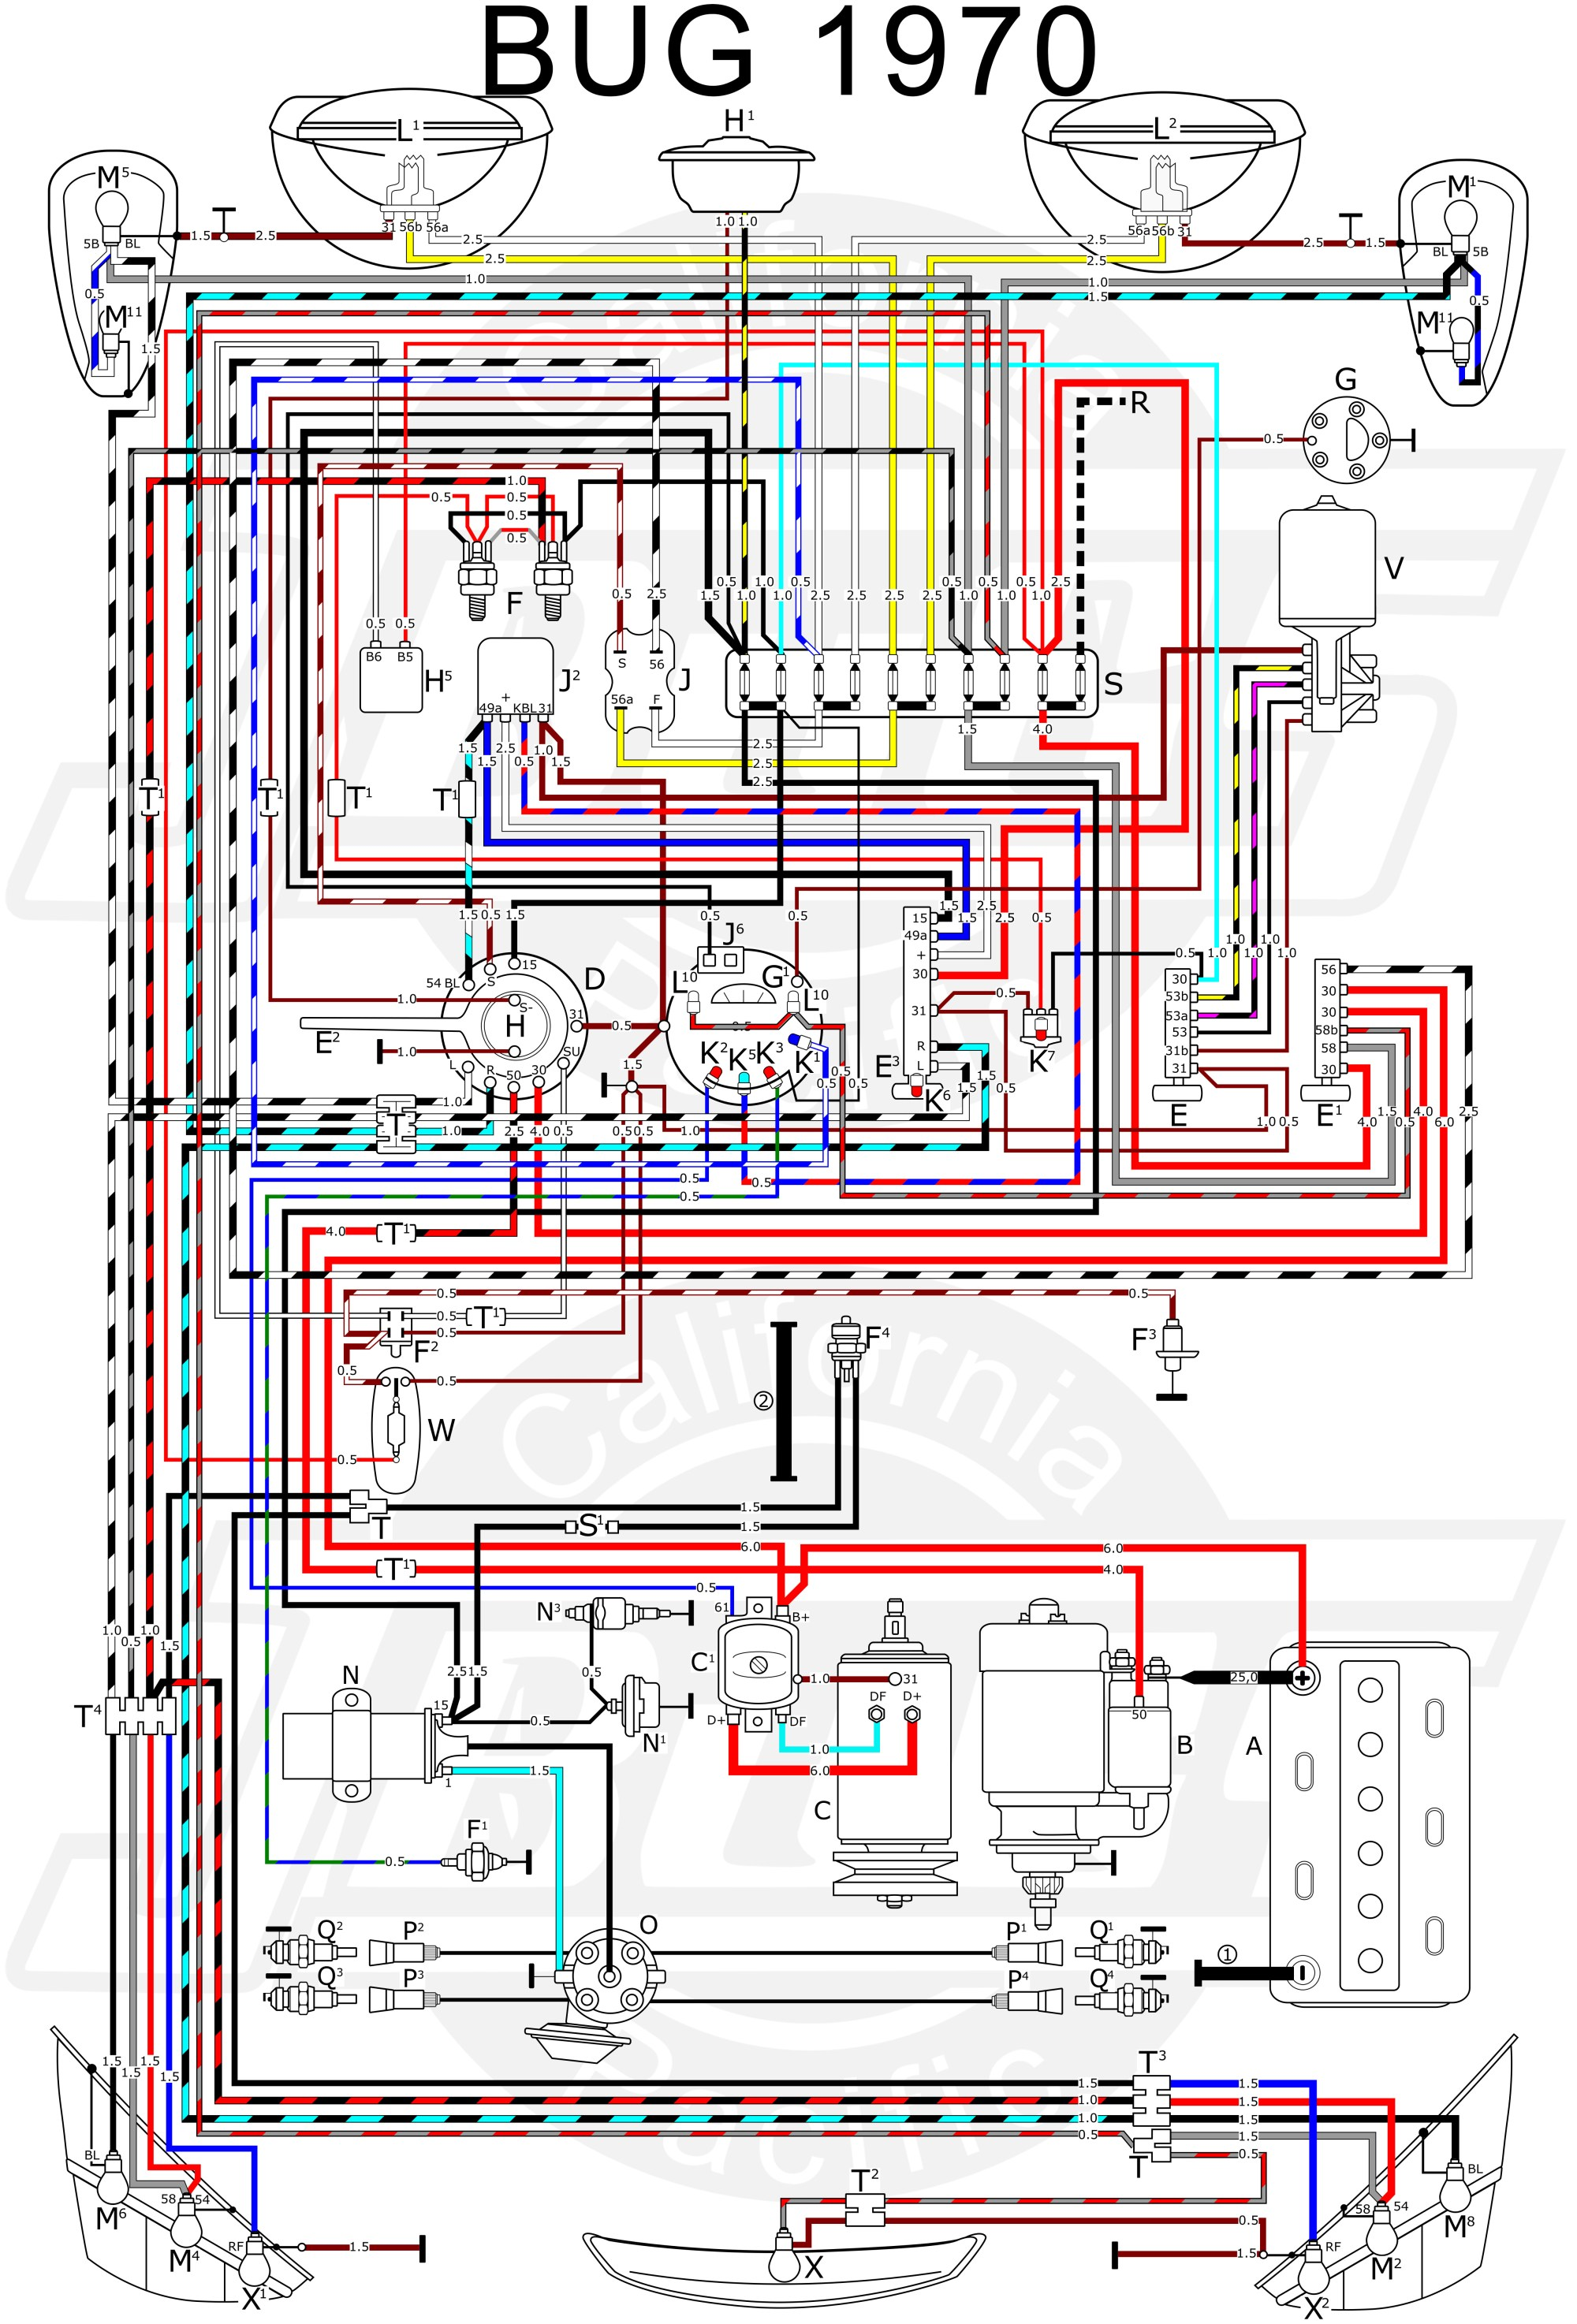 hight resolution of 1971 vw bus wiring carb wiring diagram dat 1971 vw bus wiring carb